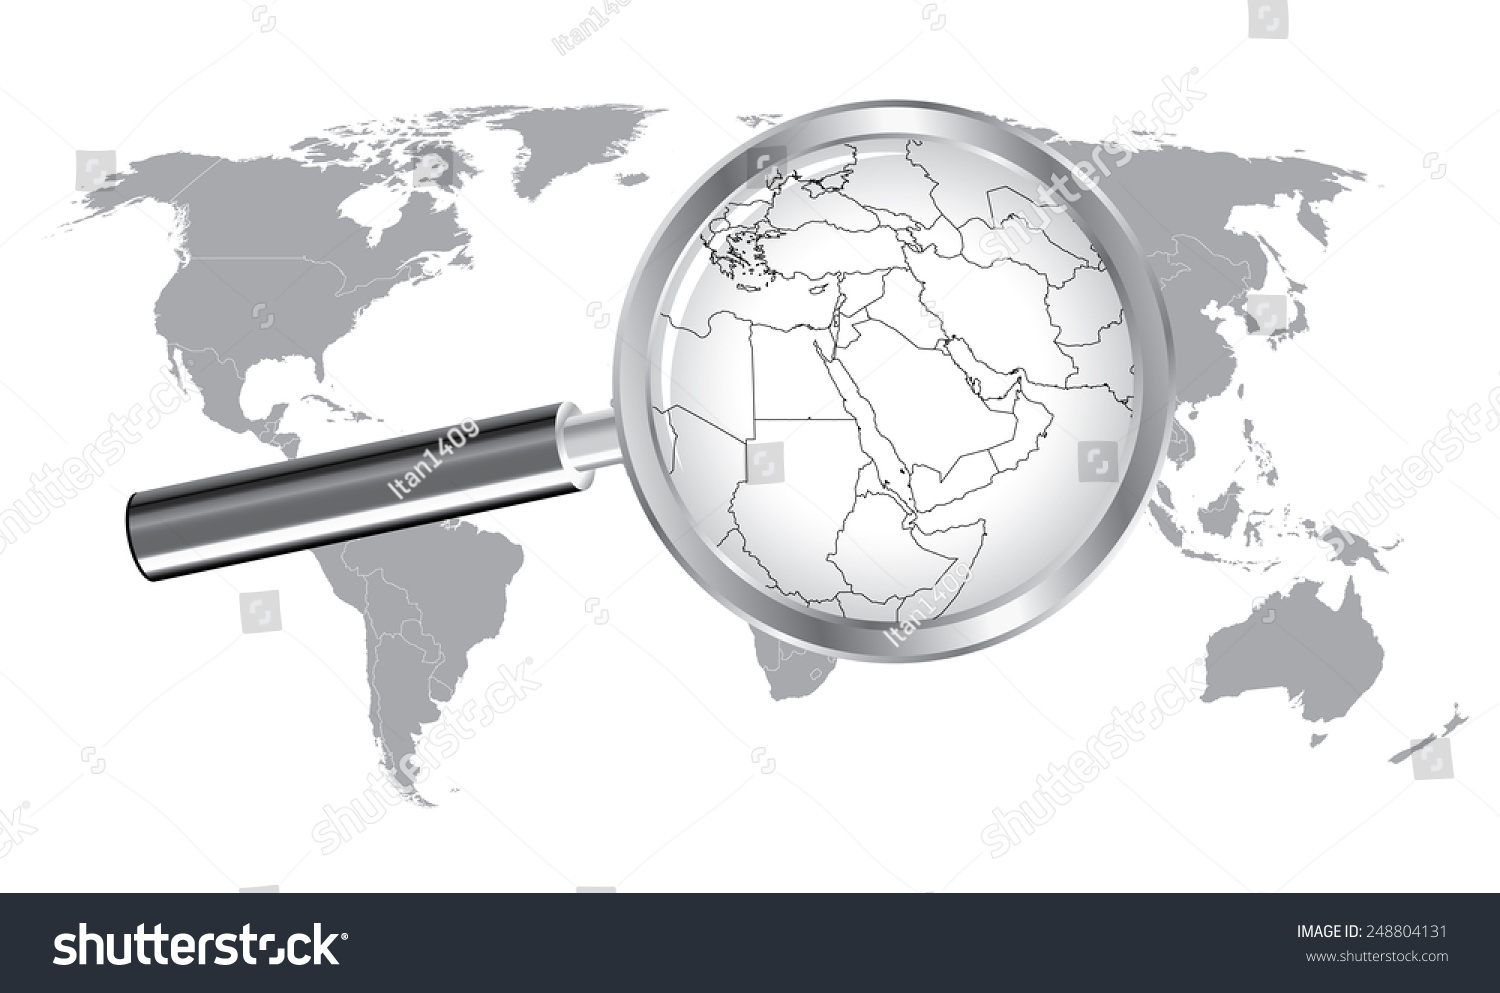 World Map Middle East Wired Continent Stock Vector - World map middle east